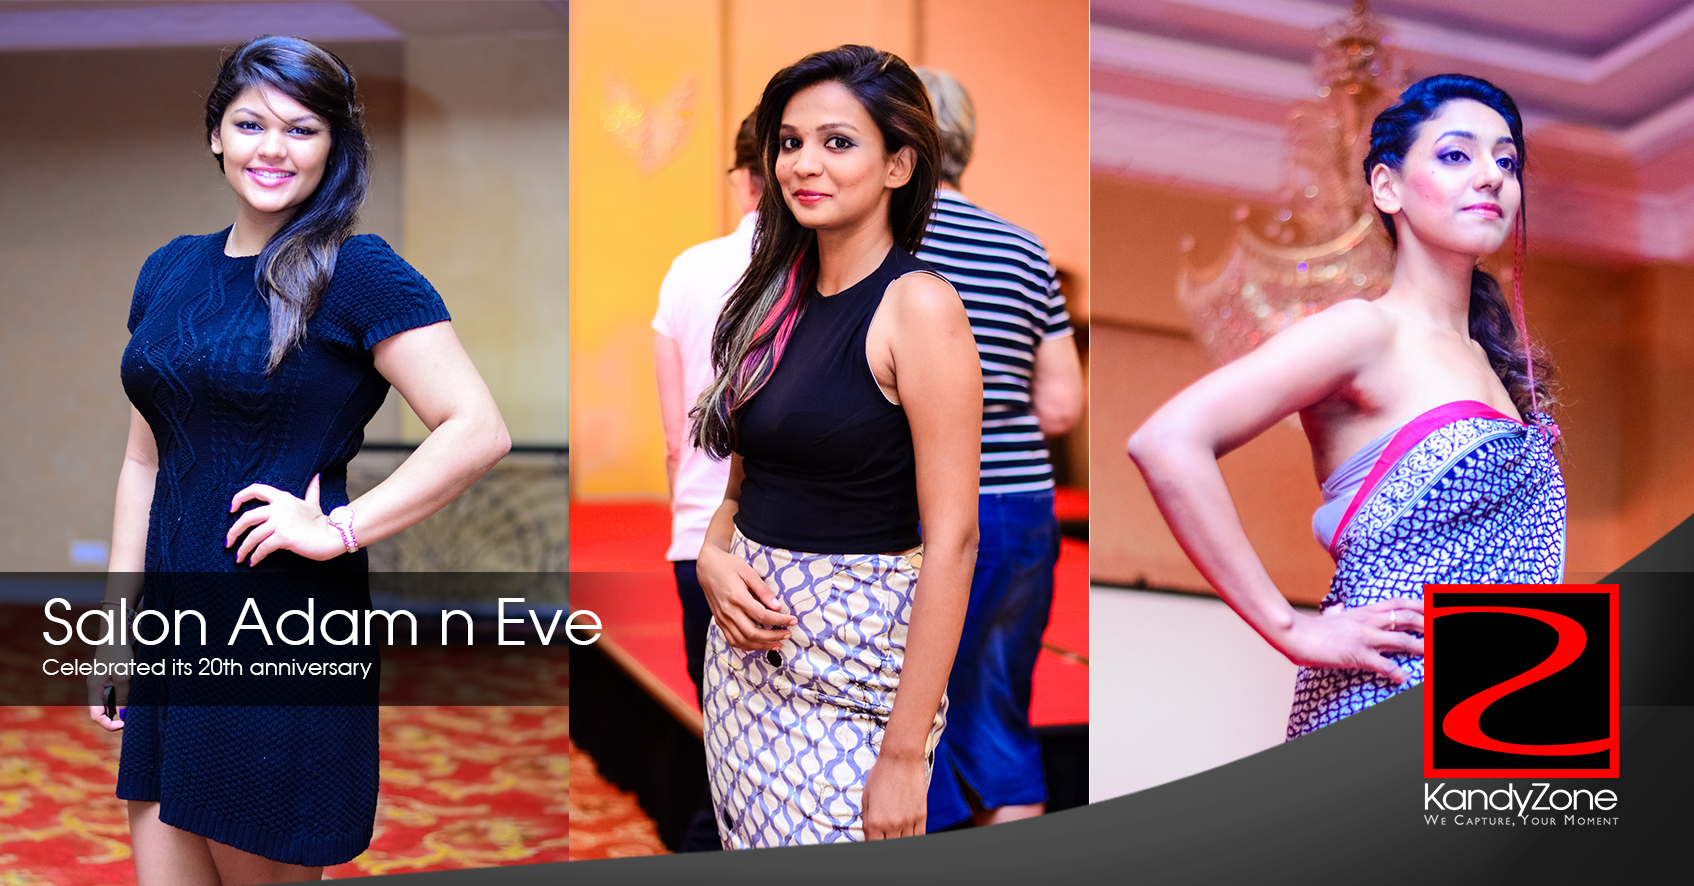 Salon Adam n Eve celebrated its 20th anniversary with a grand fashion & hair show at the Grand Kandyan. which coincided with the opening of their second branch on the 8th November 2015